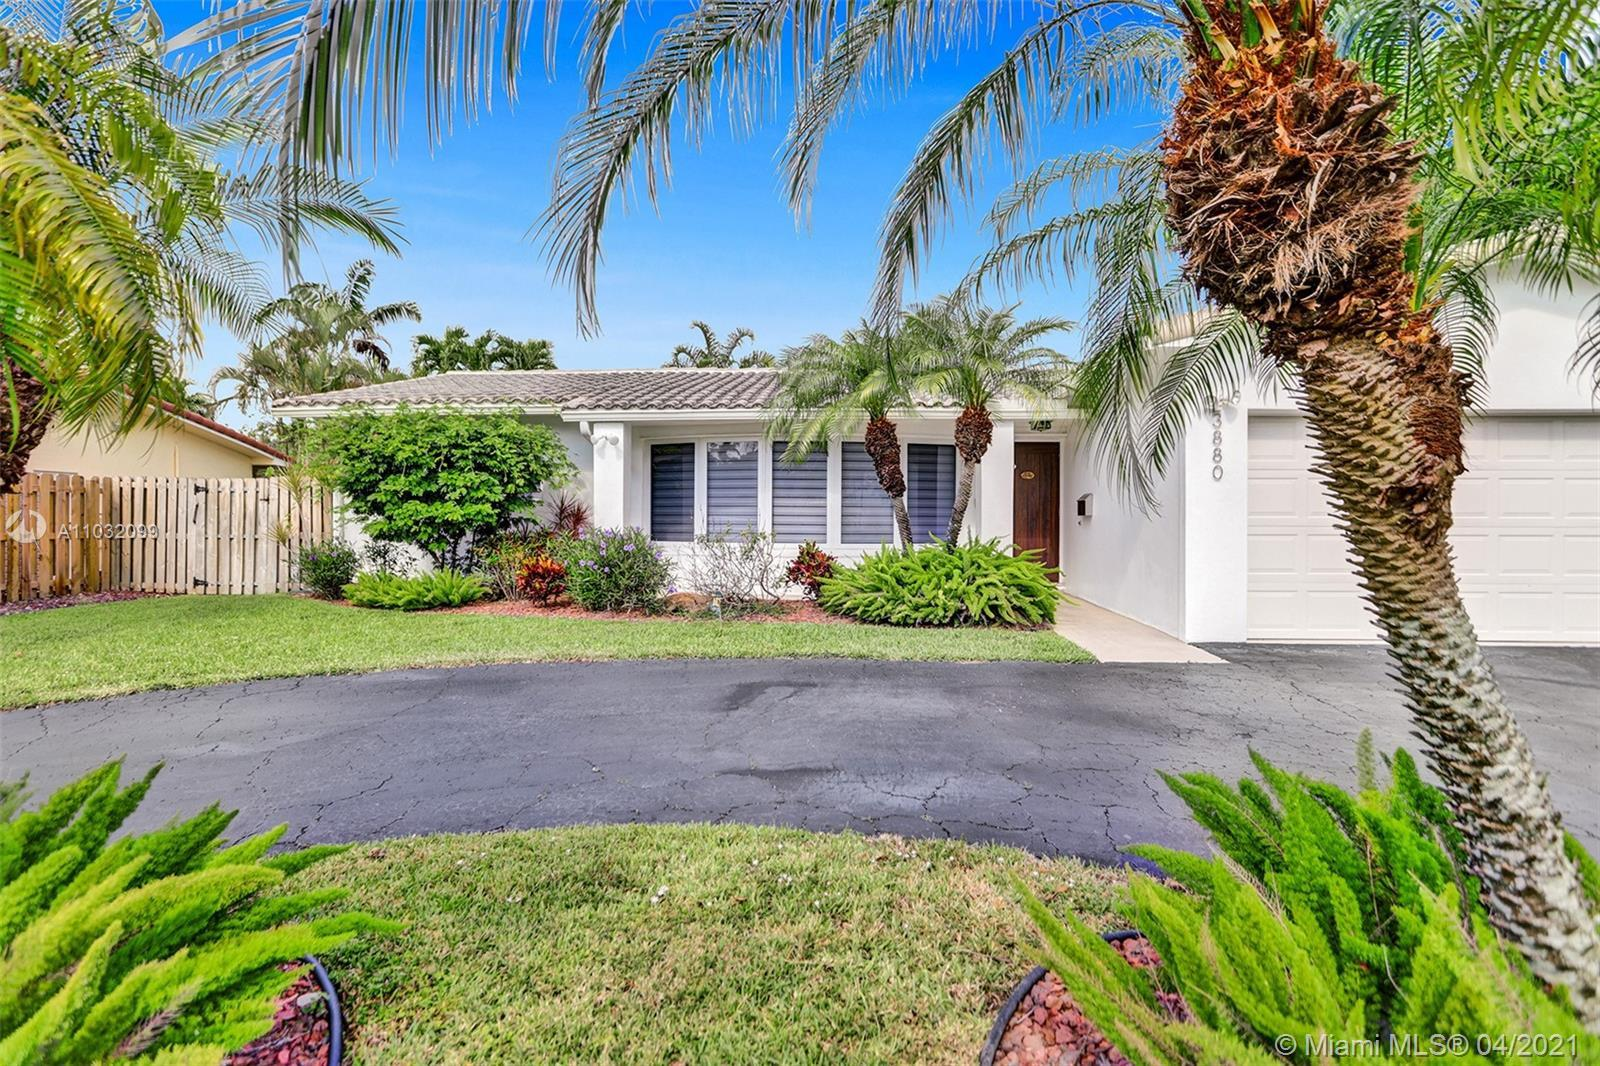 Immaculate home located in one of Broward County's premier subdivisions, Emerald Hills. Home has gre